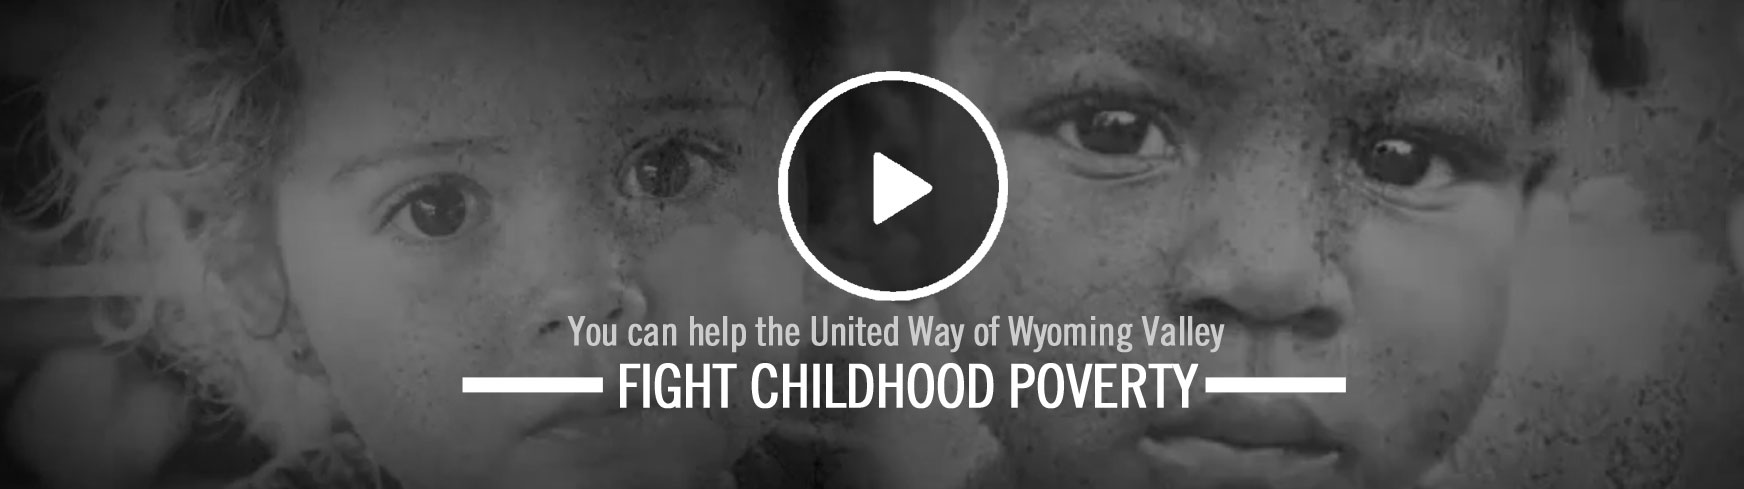 Please Help Us Fight Childhood Poverty.